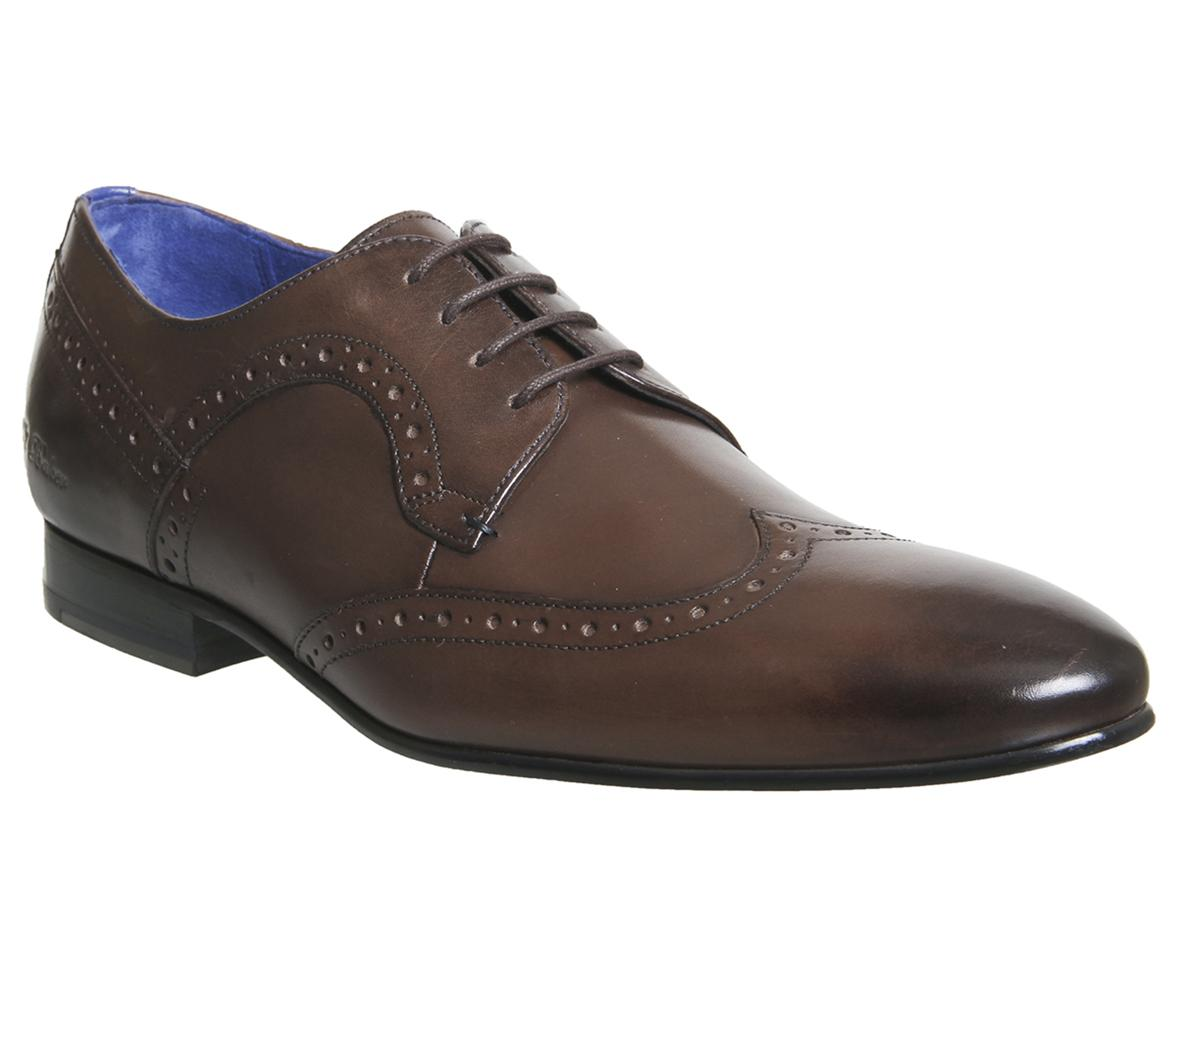 Ollivur Brogues